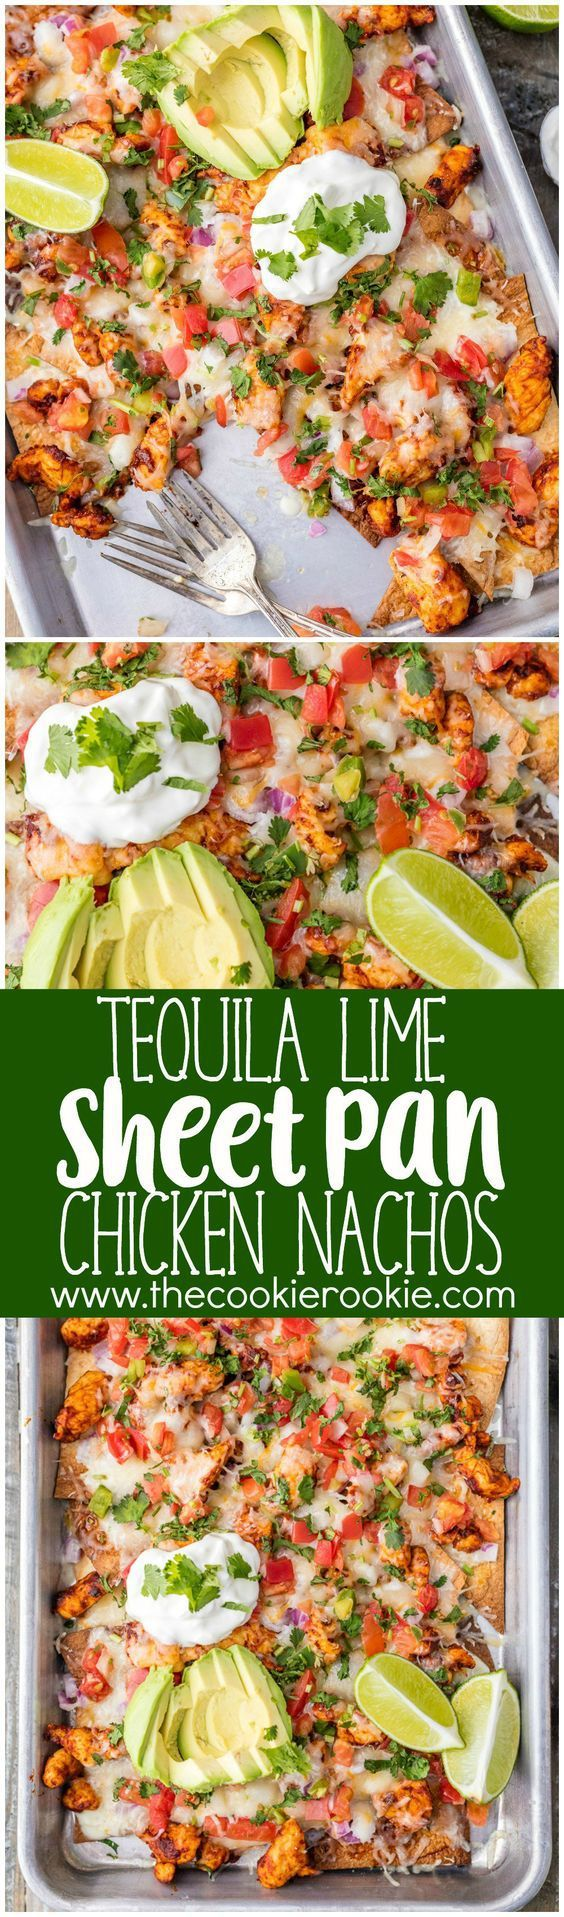 Tequila Lime SHEET PAN Chicken Nachos Recipe via The Cookie Rookie – a great recipe for feeding a crowd with delicious chicken